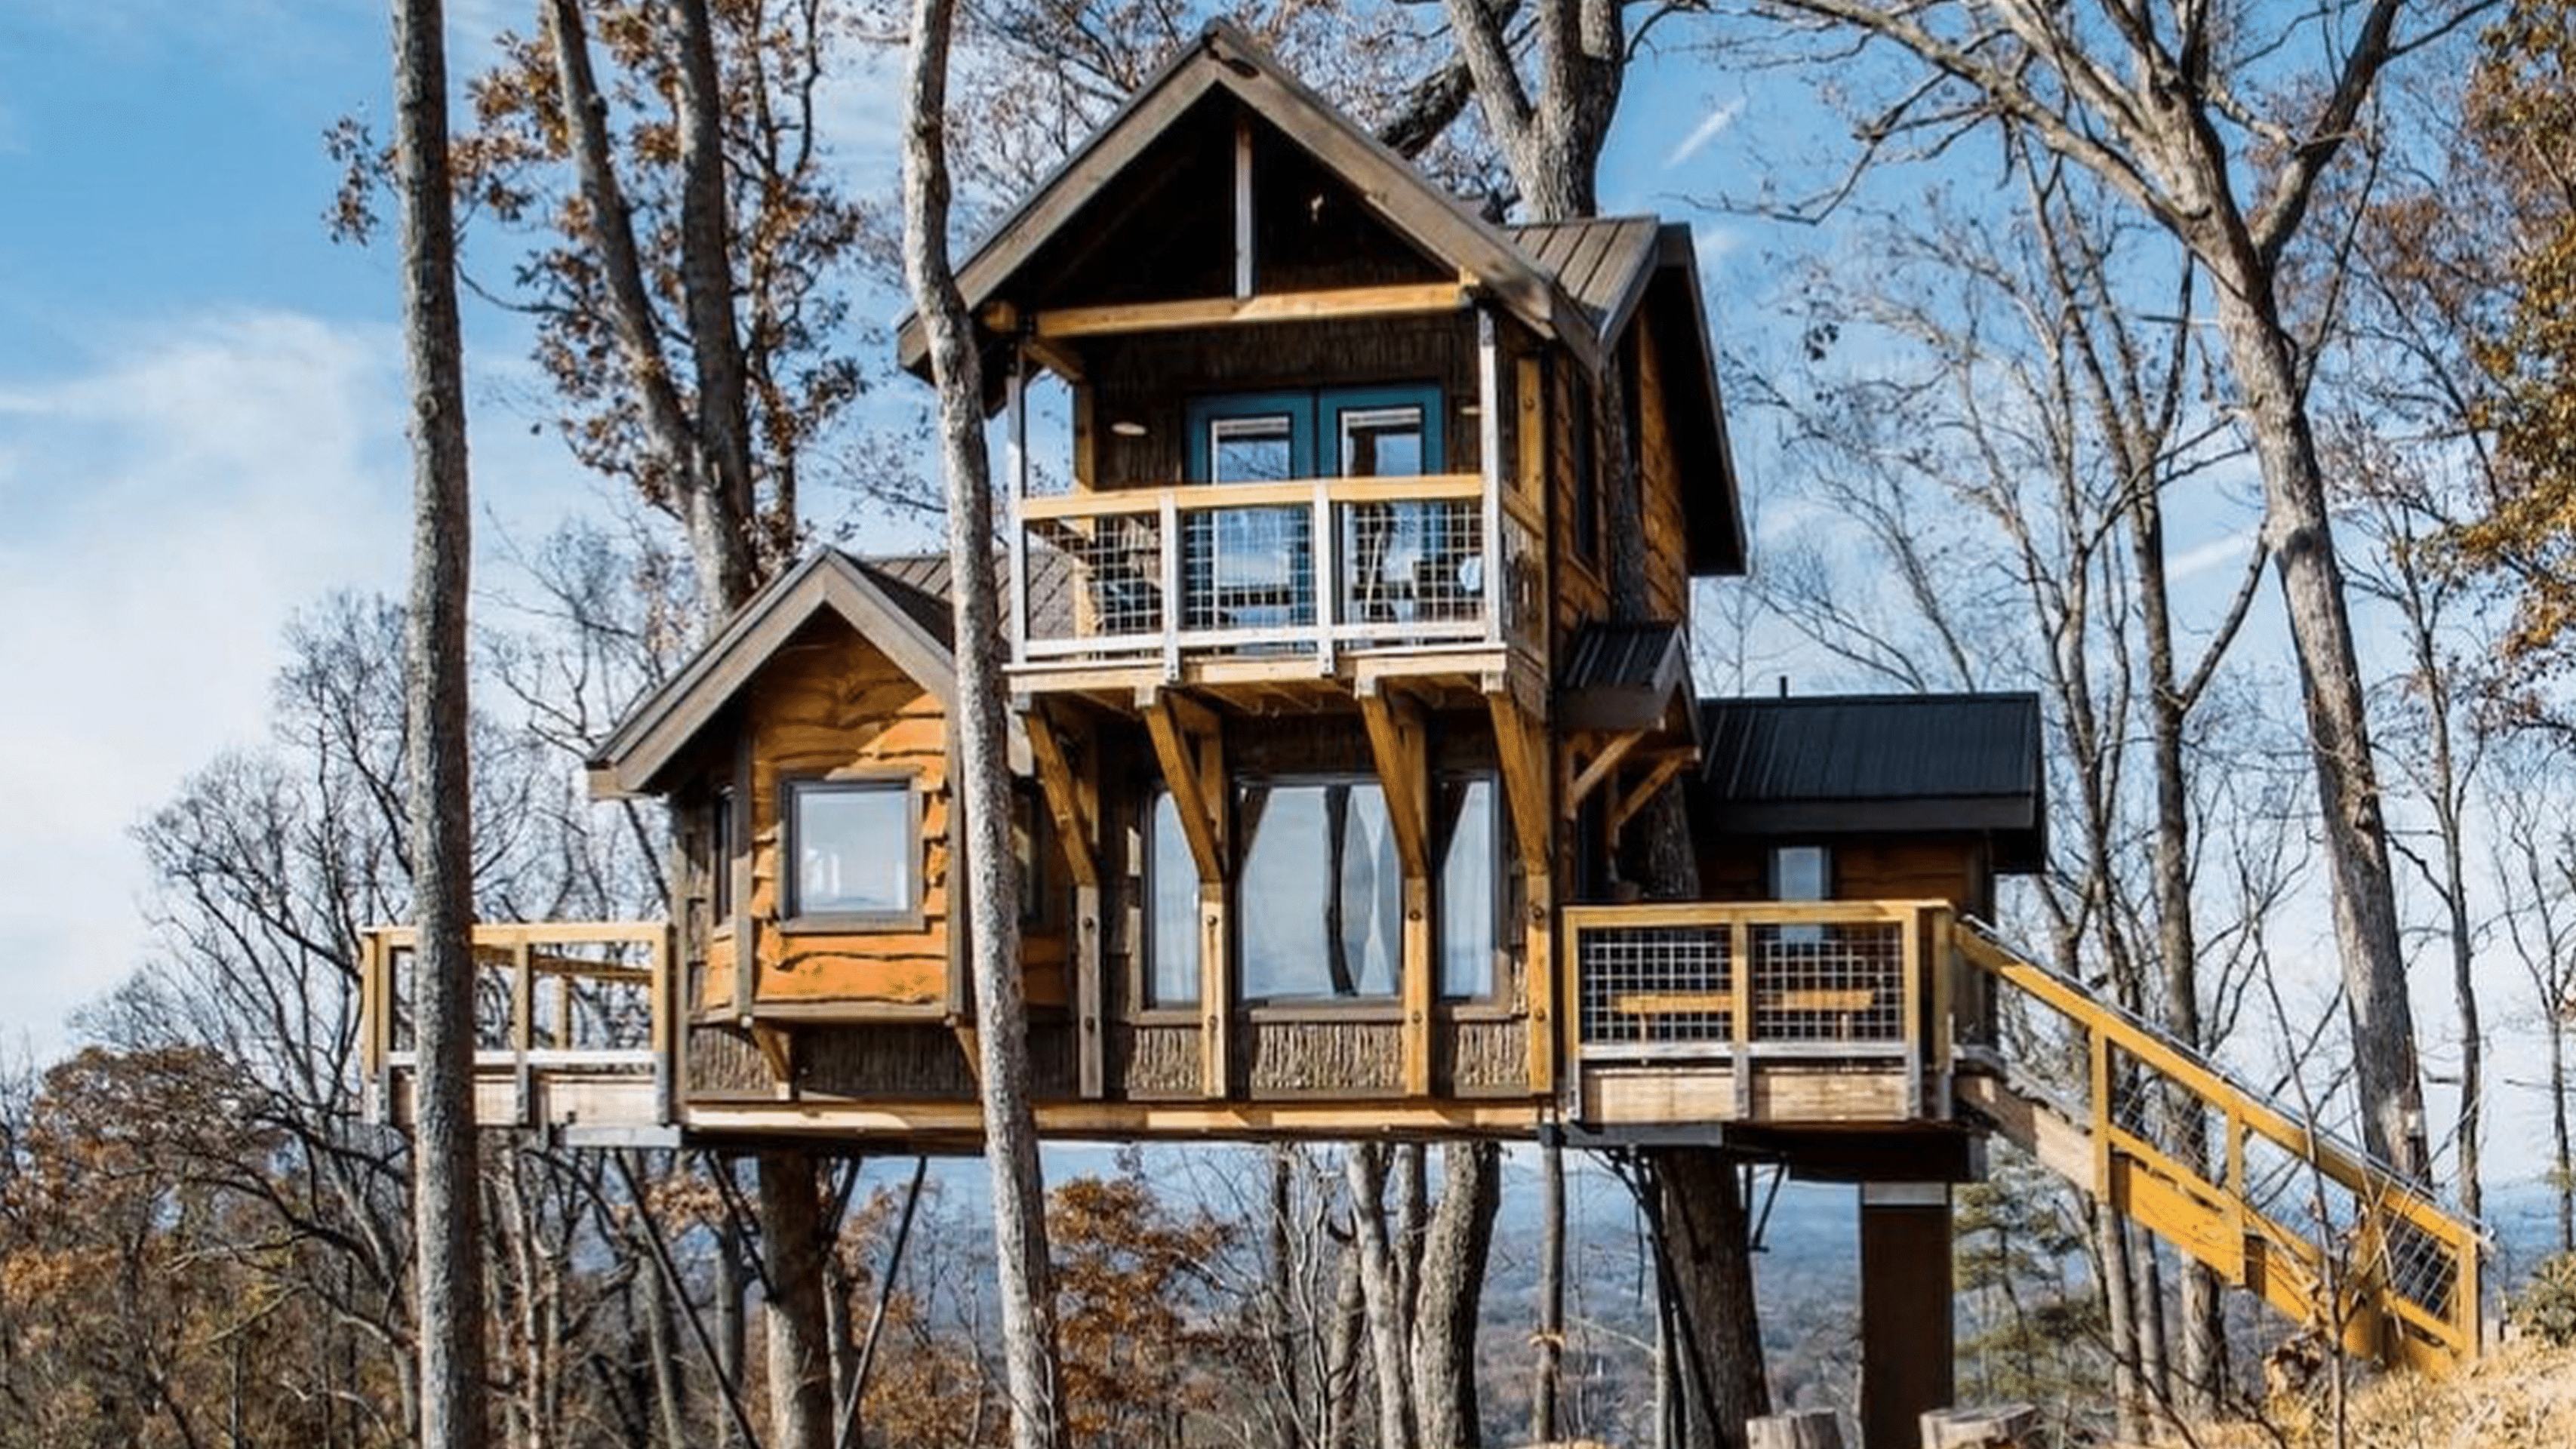 A woodland house shown on World of Carpentry